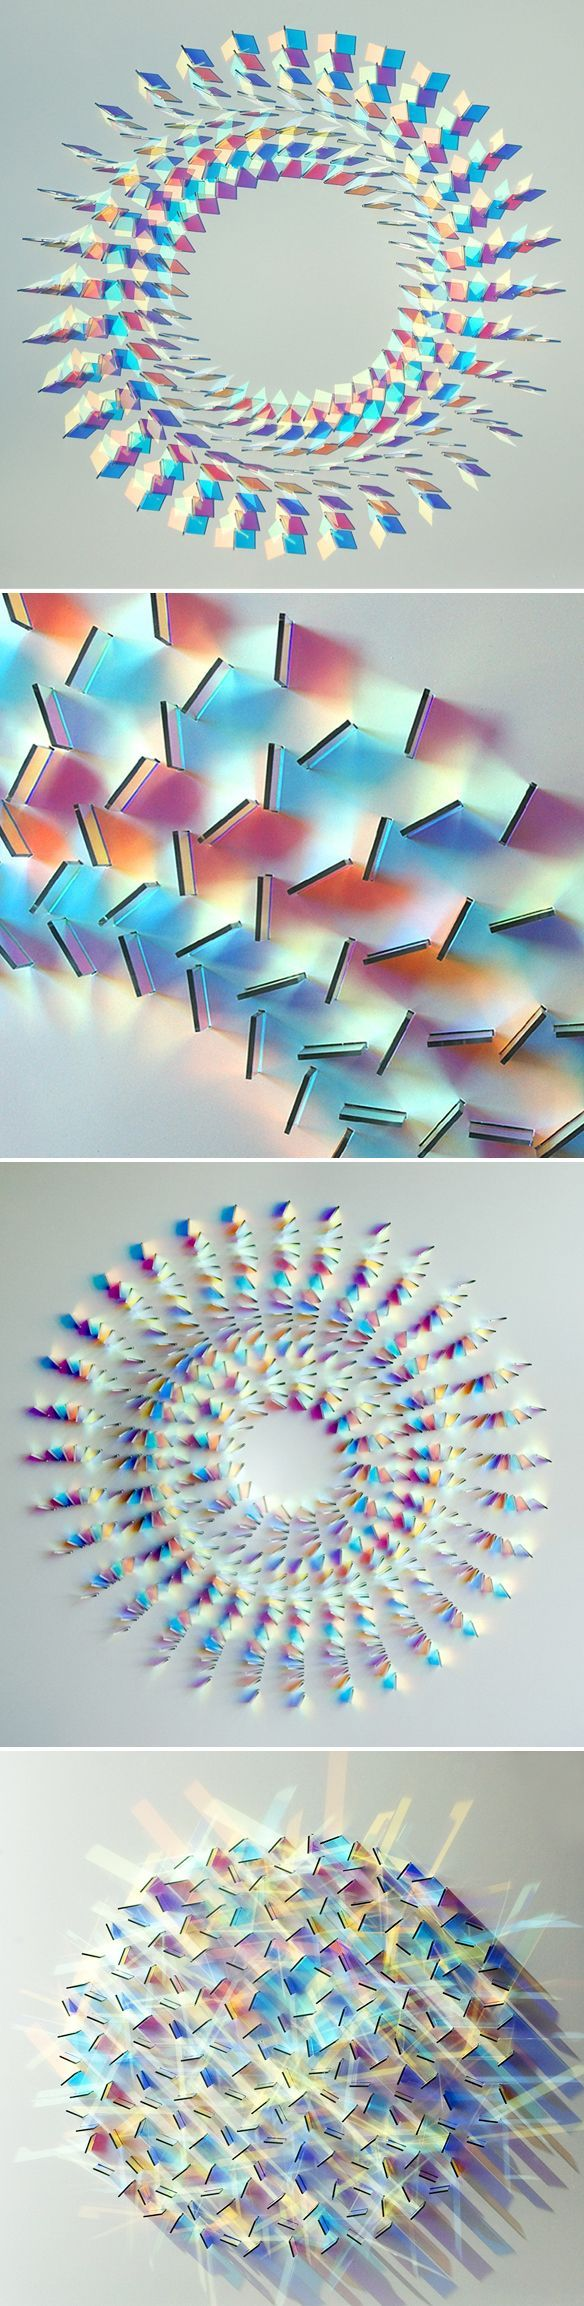 """These are glass wall panel installations by UK based artist Chris Wood. She says that her work is about expressing the """"magic of light"""".:"""